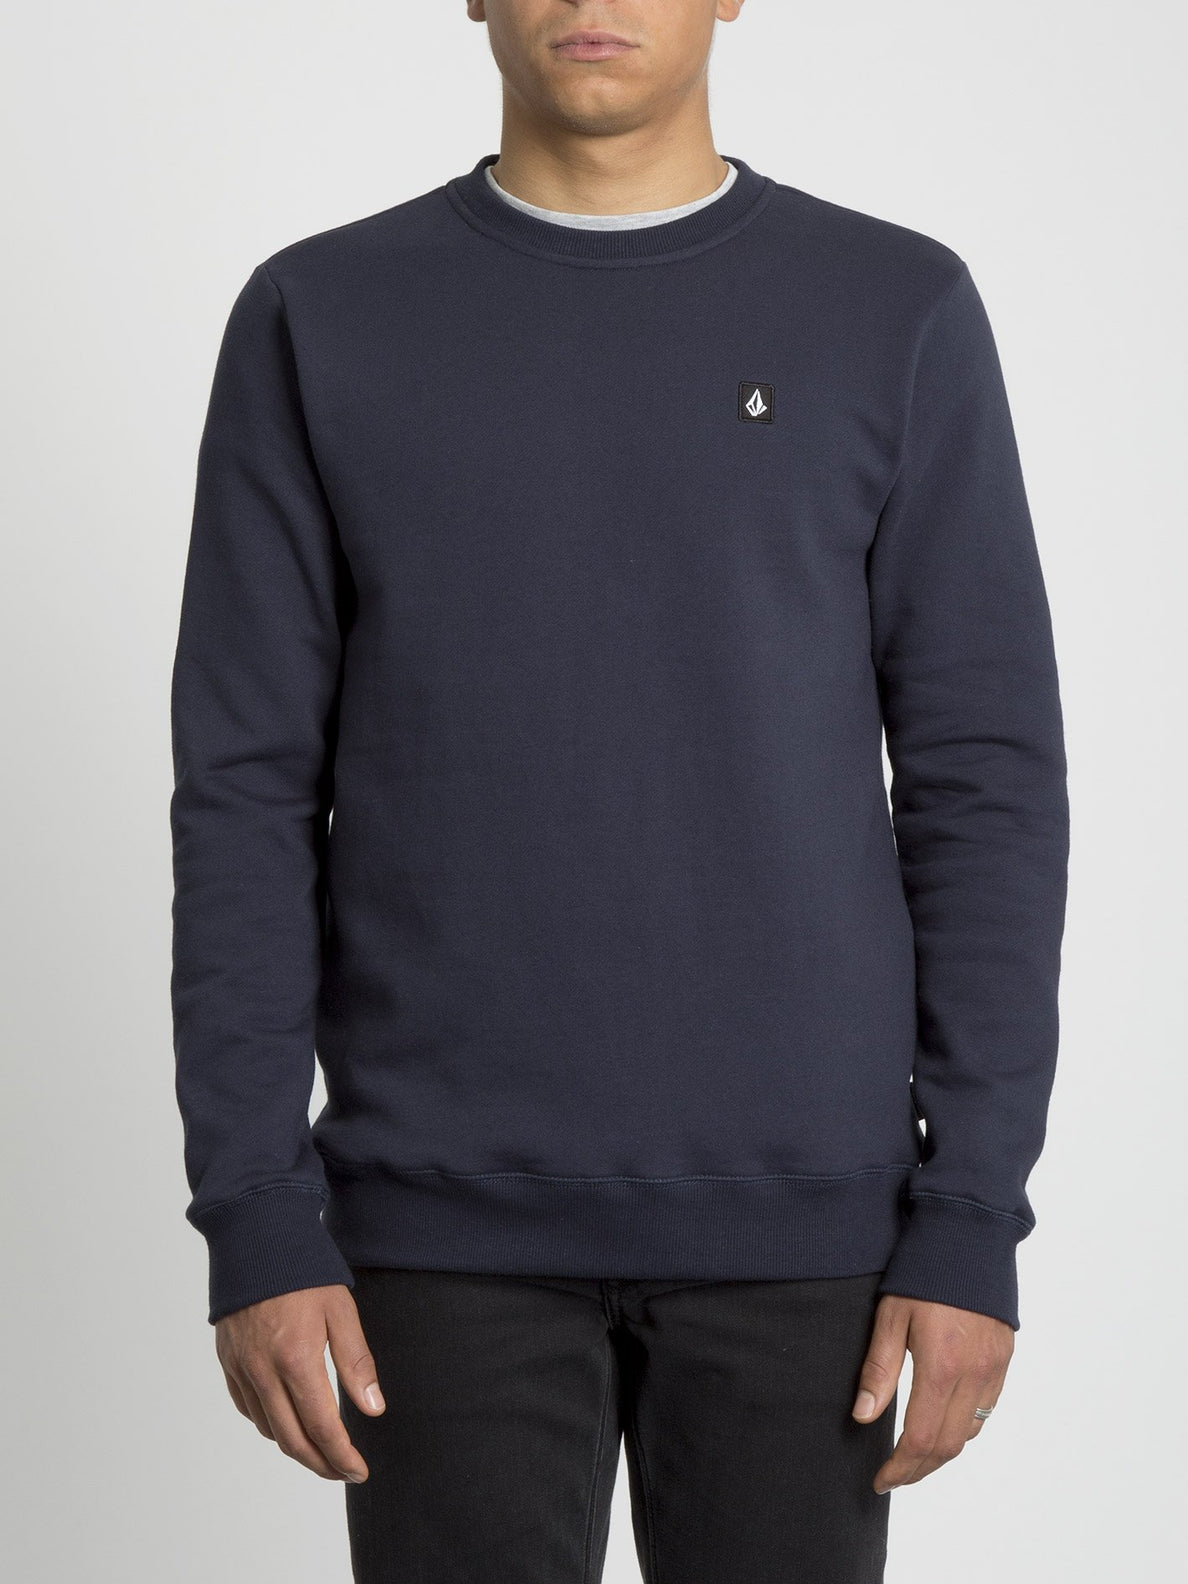 Single Stone Sweater - Navy (A4631910_NVY) [F]